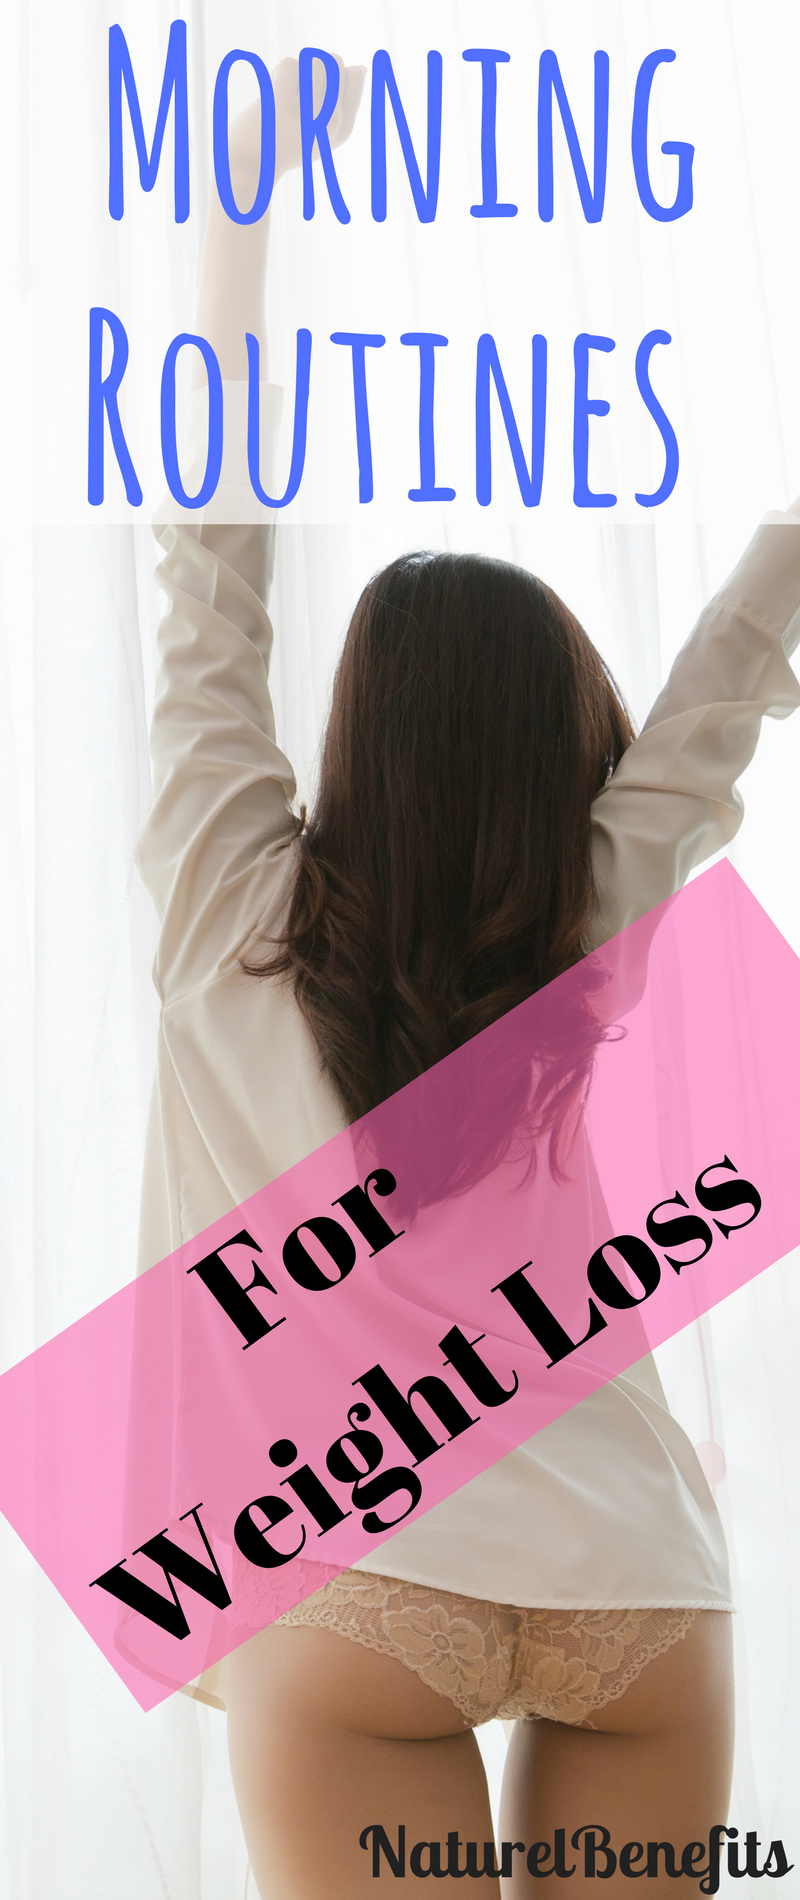 Lose 6 pounds of fat in 2 weeks